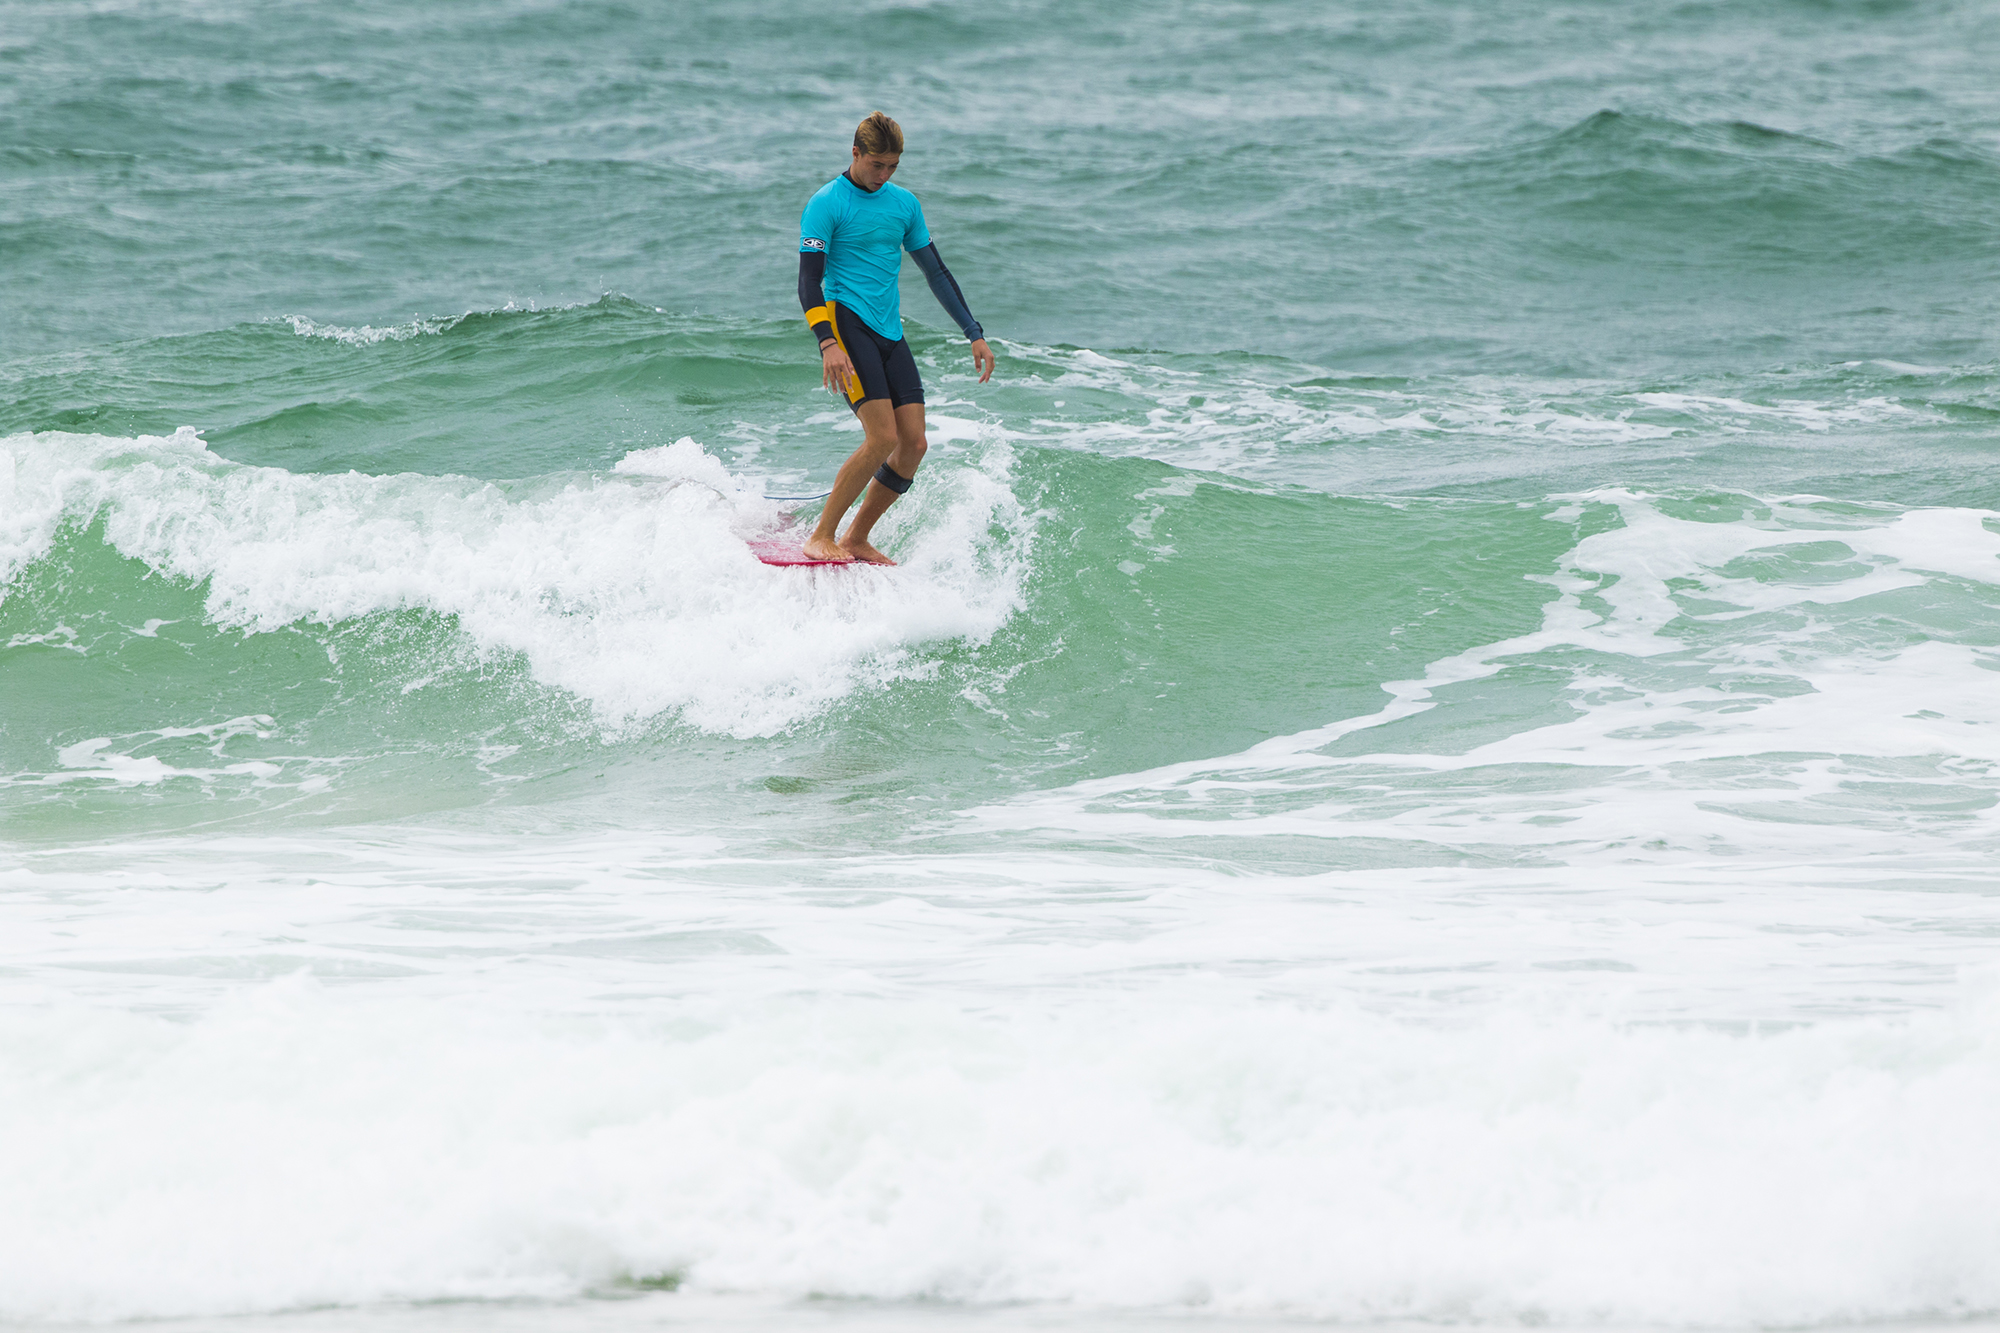 clement-roseyro-longboard-nouvelle-aquitaine-under18-championships-2017-lacanau-we-creative-guillaume-arrieta